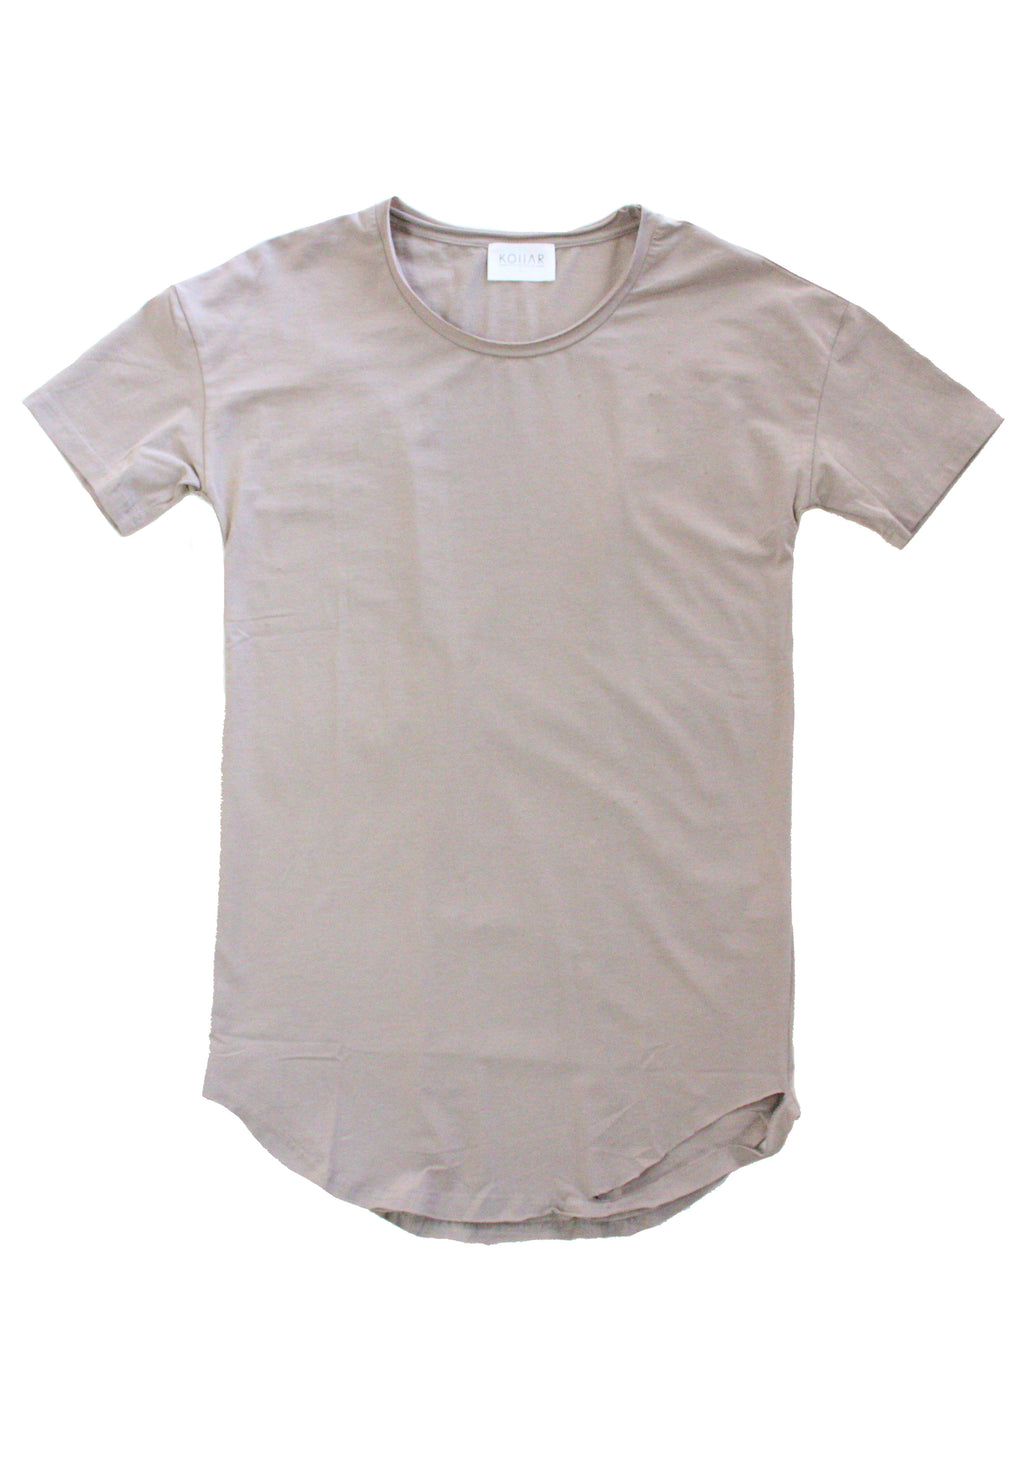 Taylor Tee in Taupe